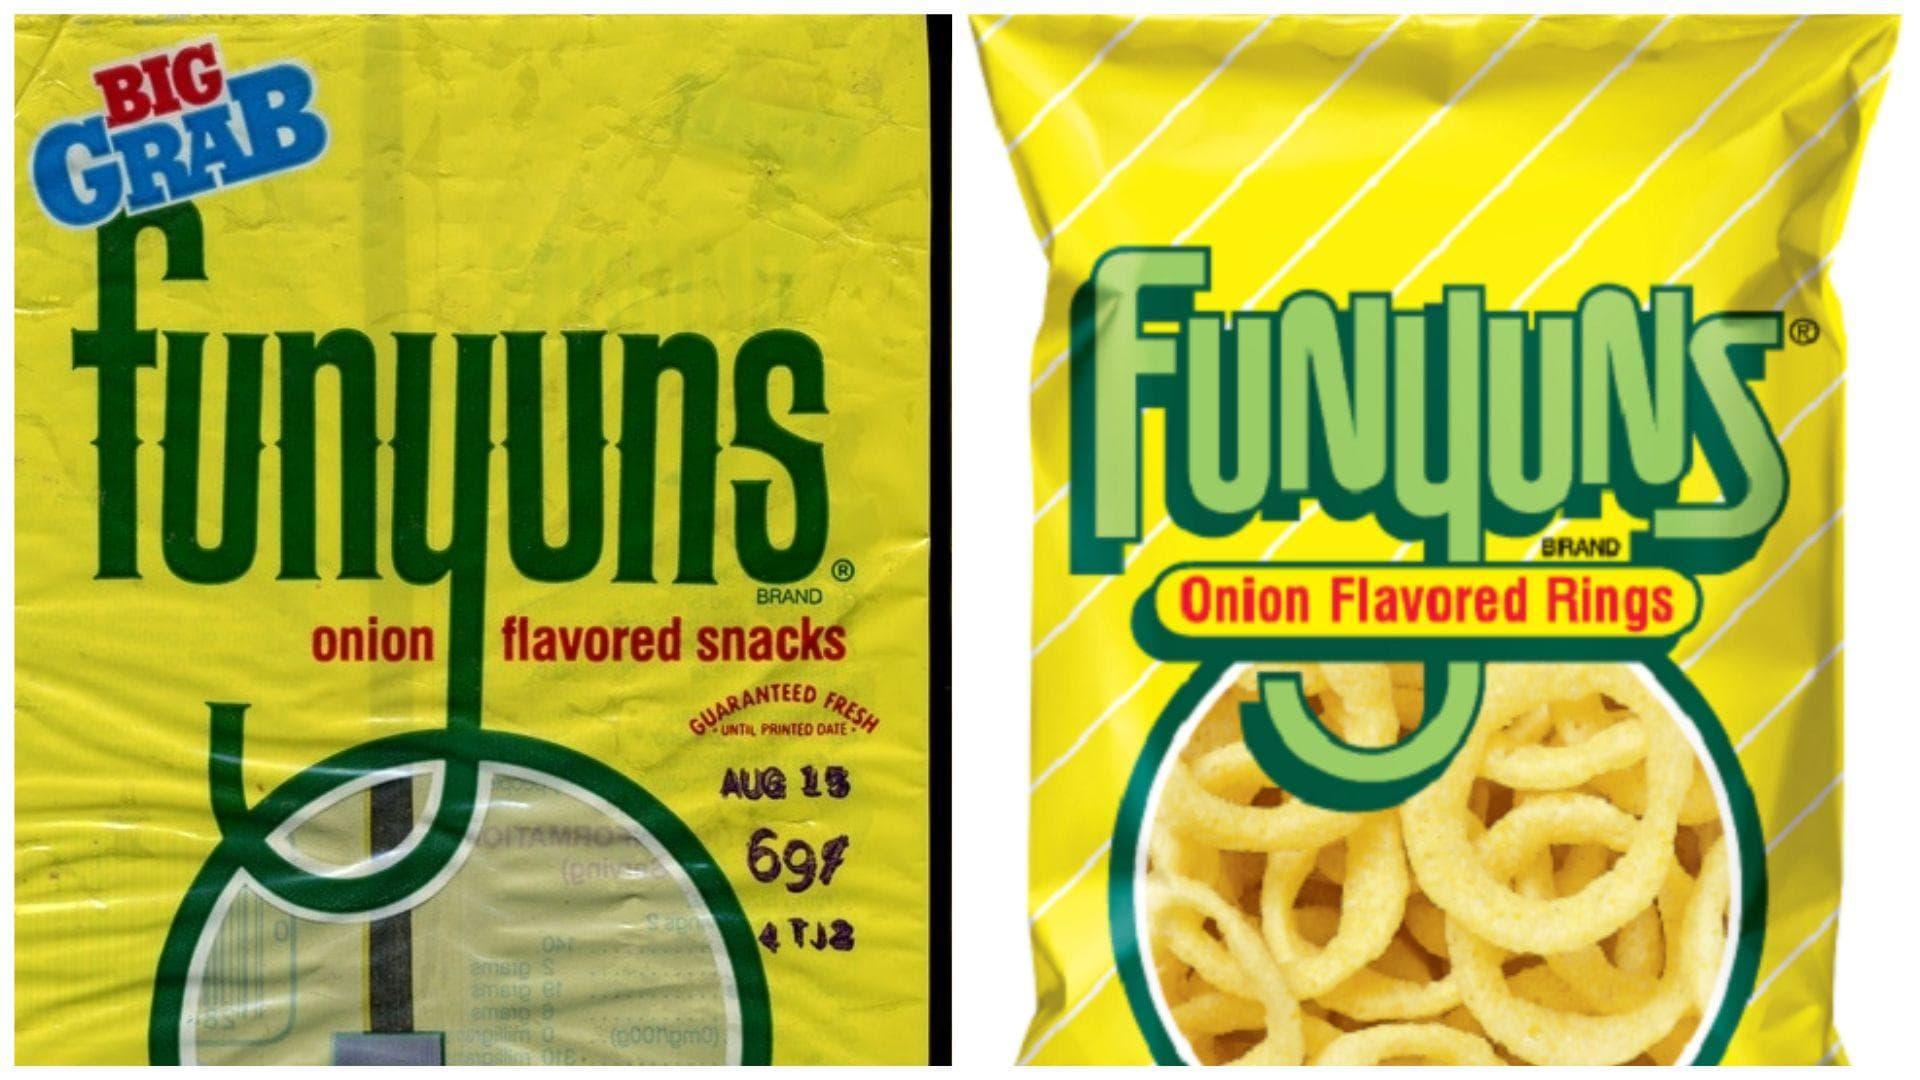 Funyuns, C. 1980s Vs. 2019 on Random Potato Chip Bags Have Changed Over Tim